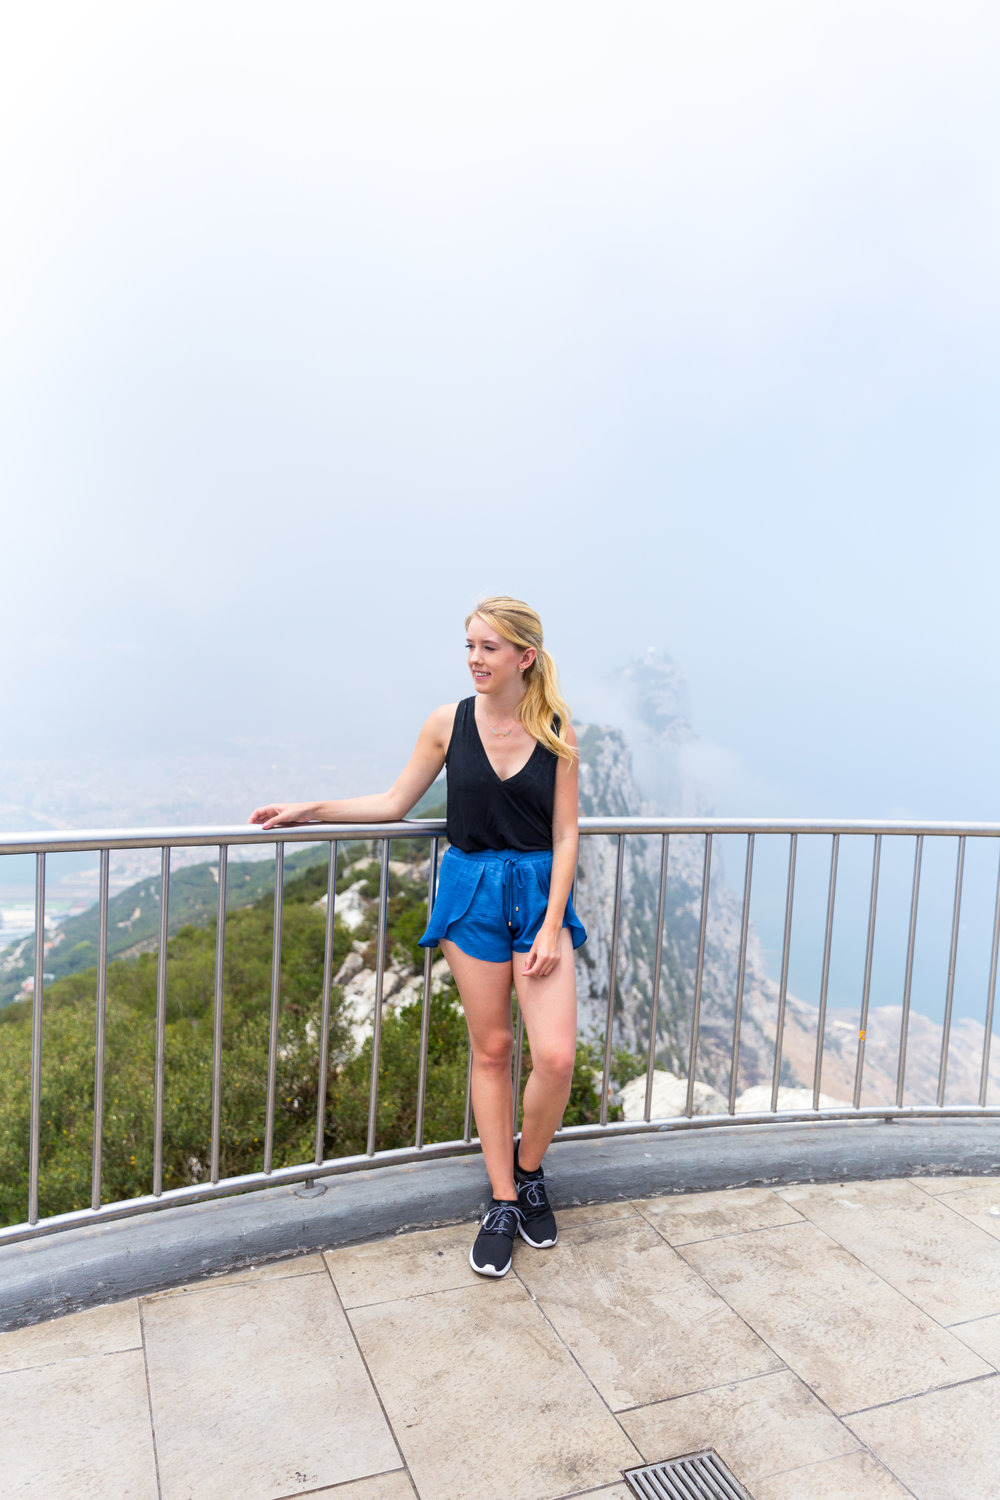 Gibraltar Summer Travel Hiking Fashion.jpg